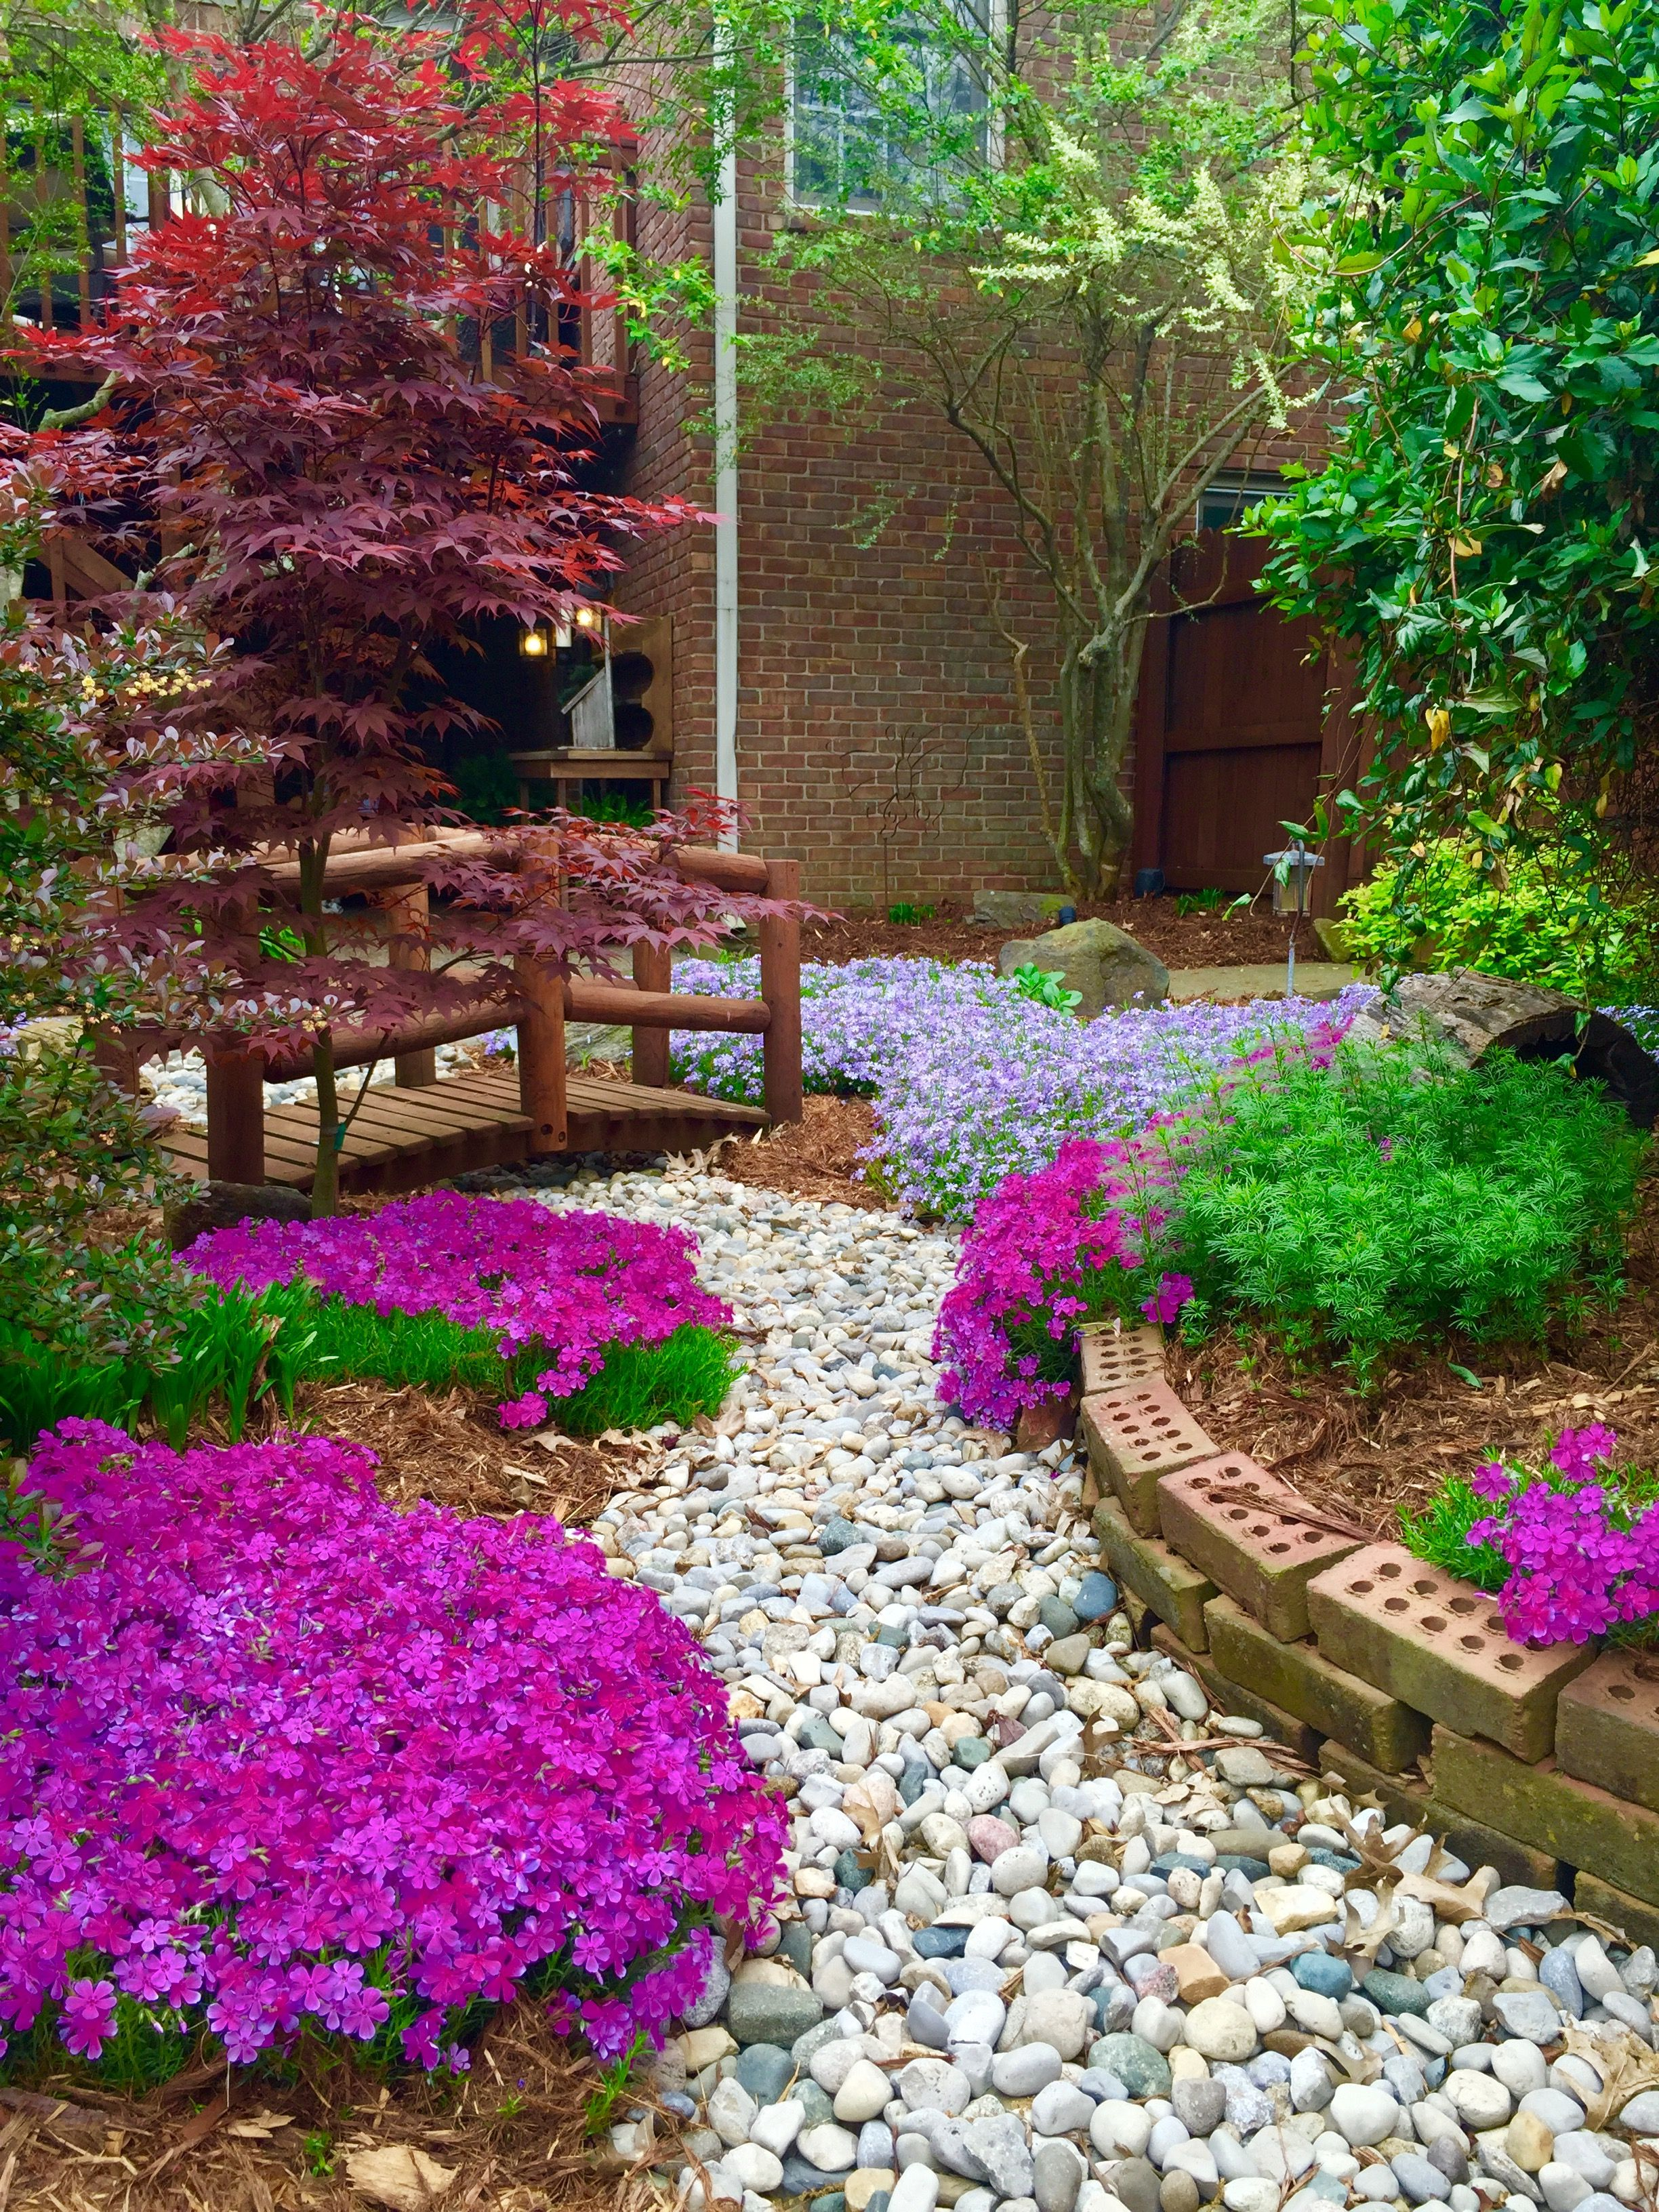 Dry creek bed with Creeping phlox in our backyard. April